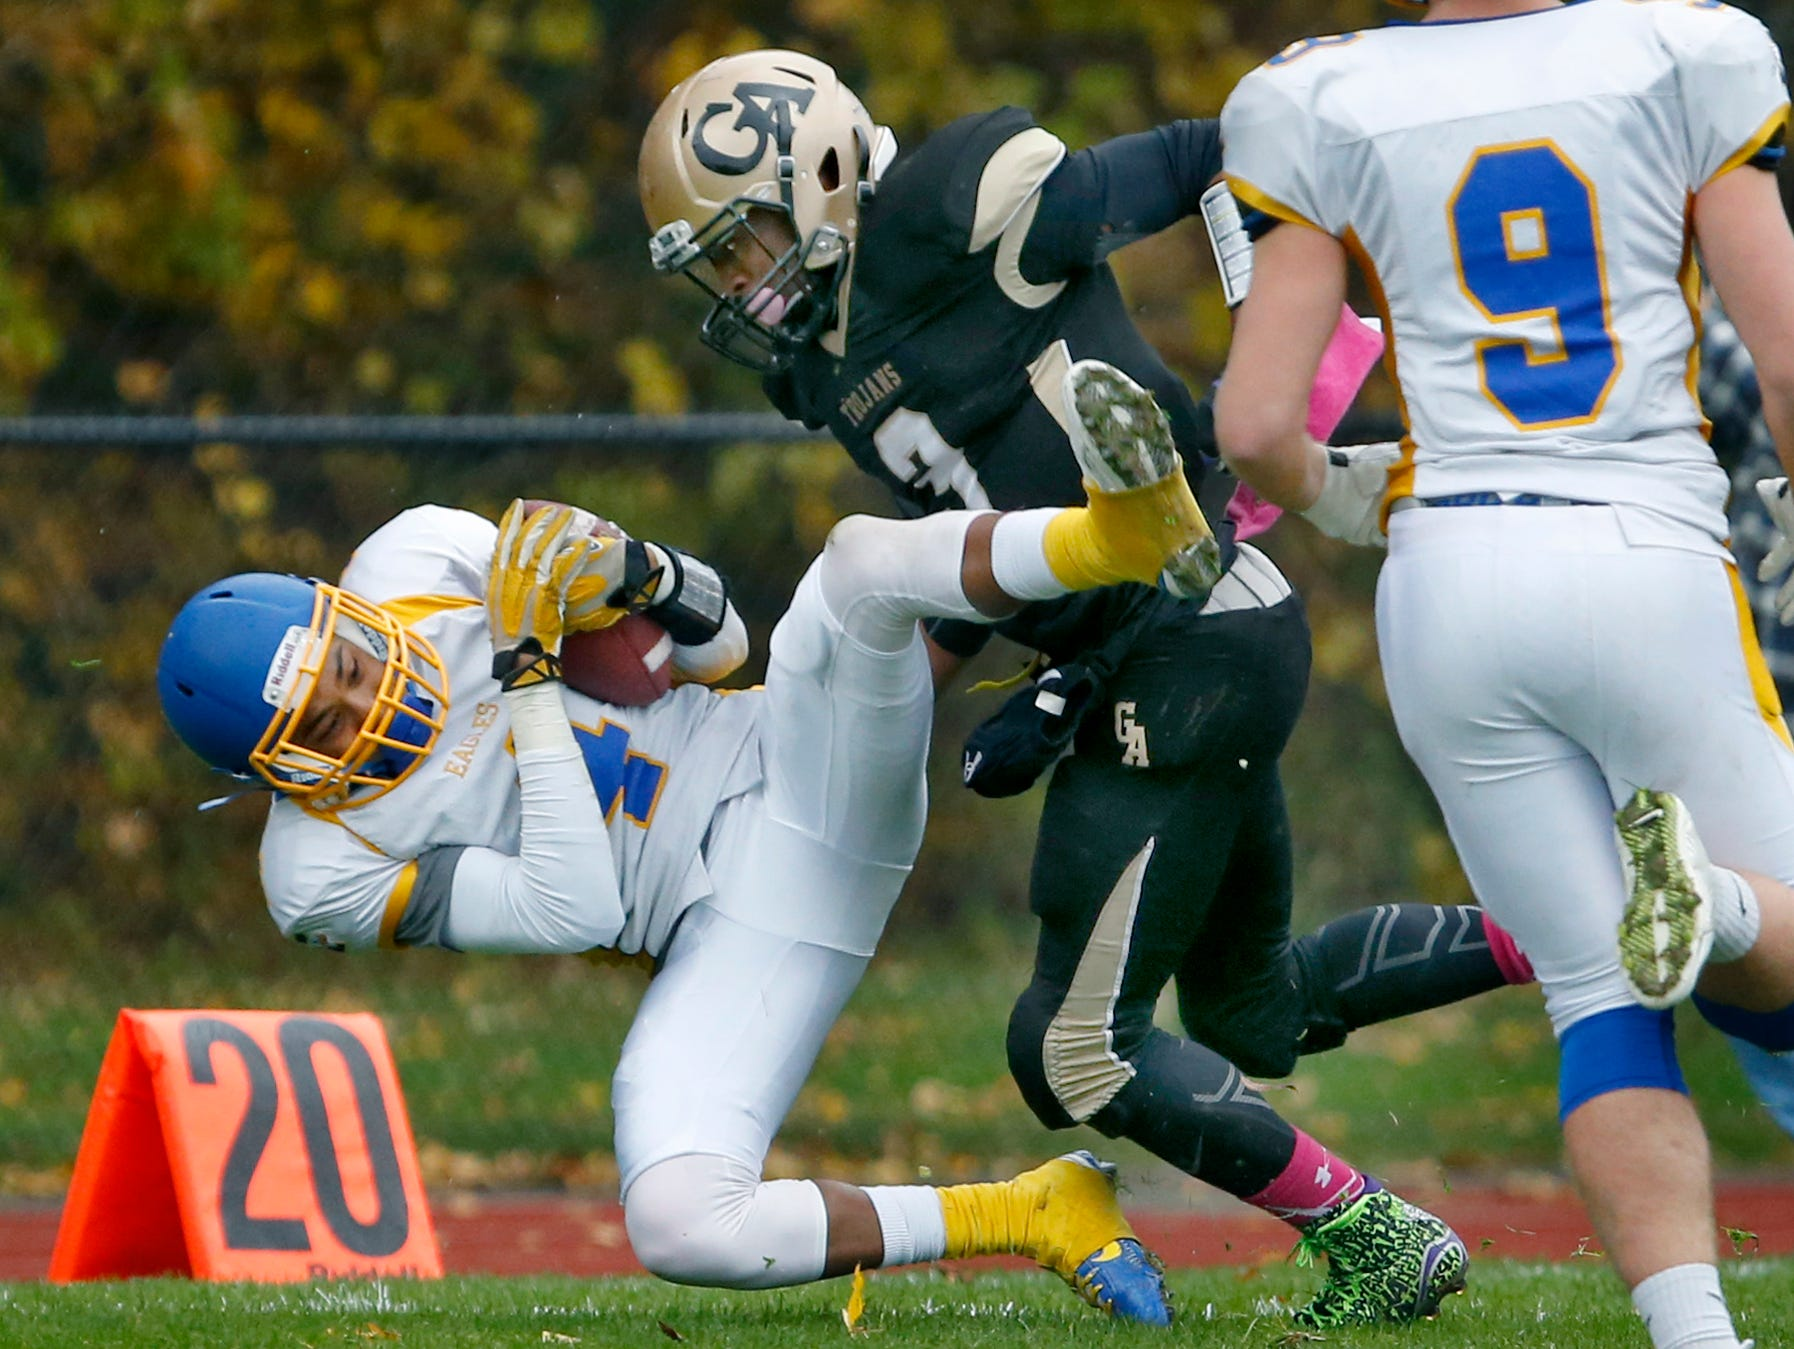 Irondequoit's Devyn Walker holds onto the ball while tackled by Greece Athena's Ta'Von Granison in the second quarter at Greece Athena High School.